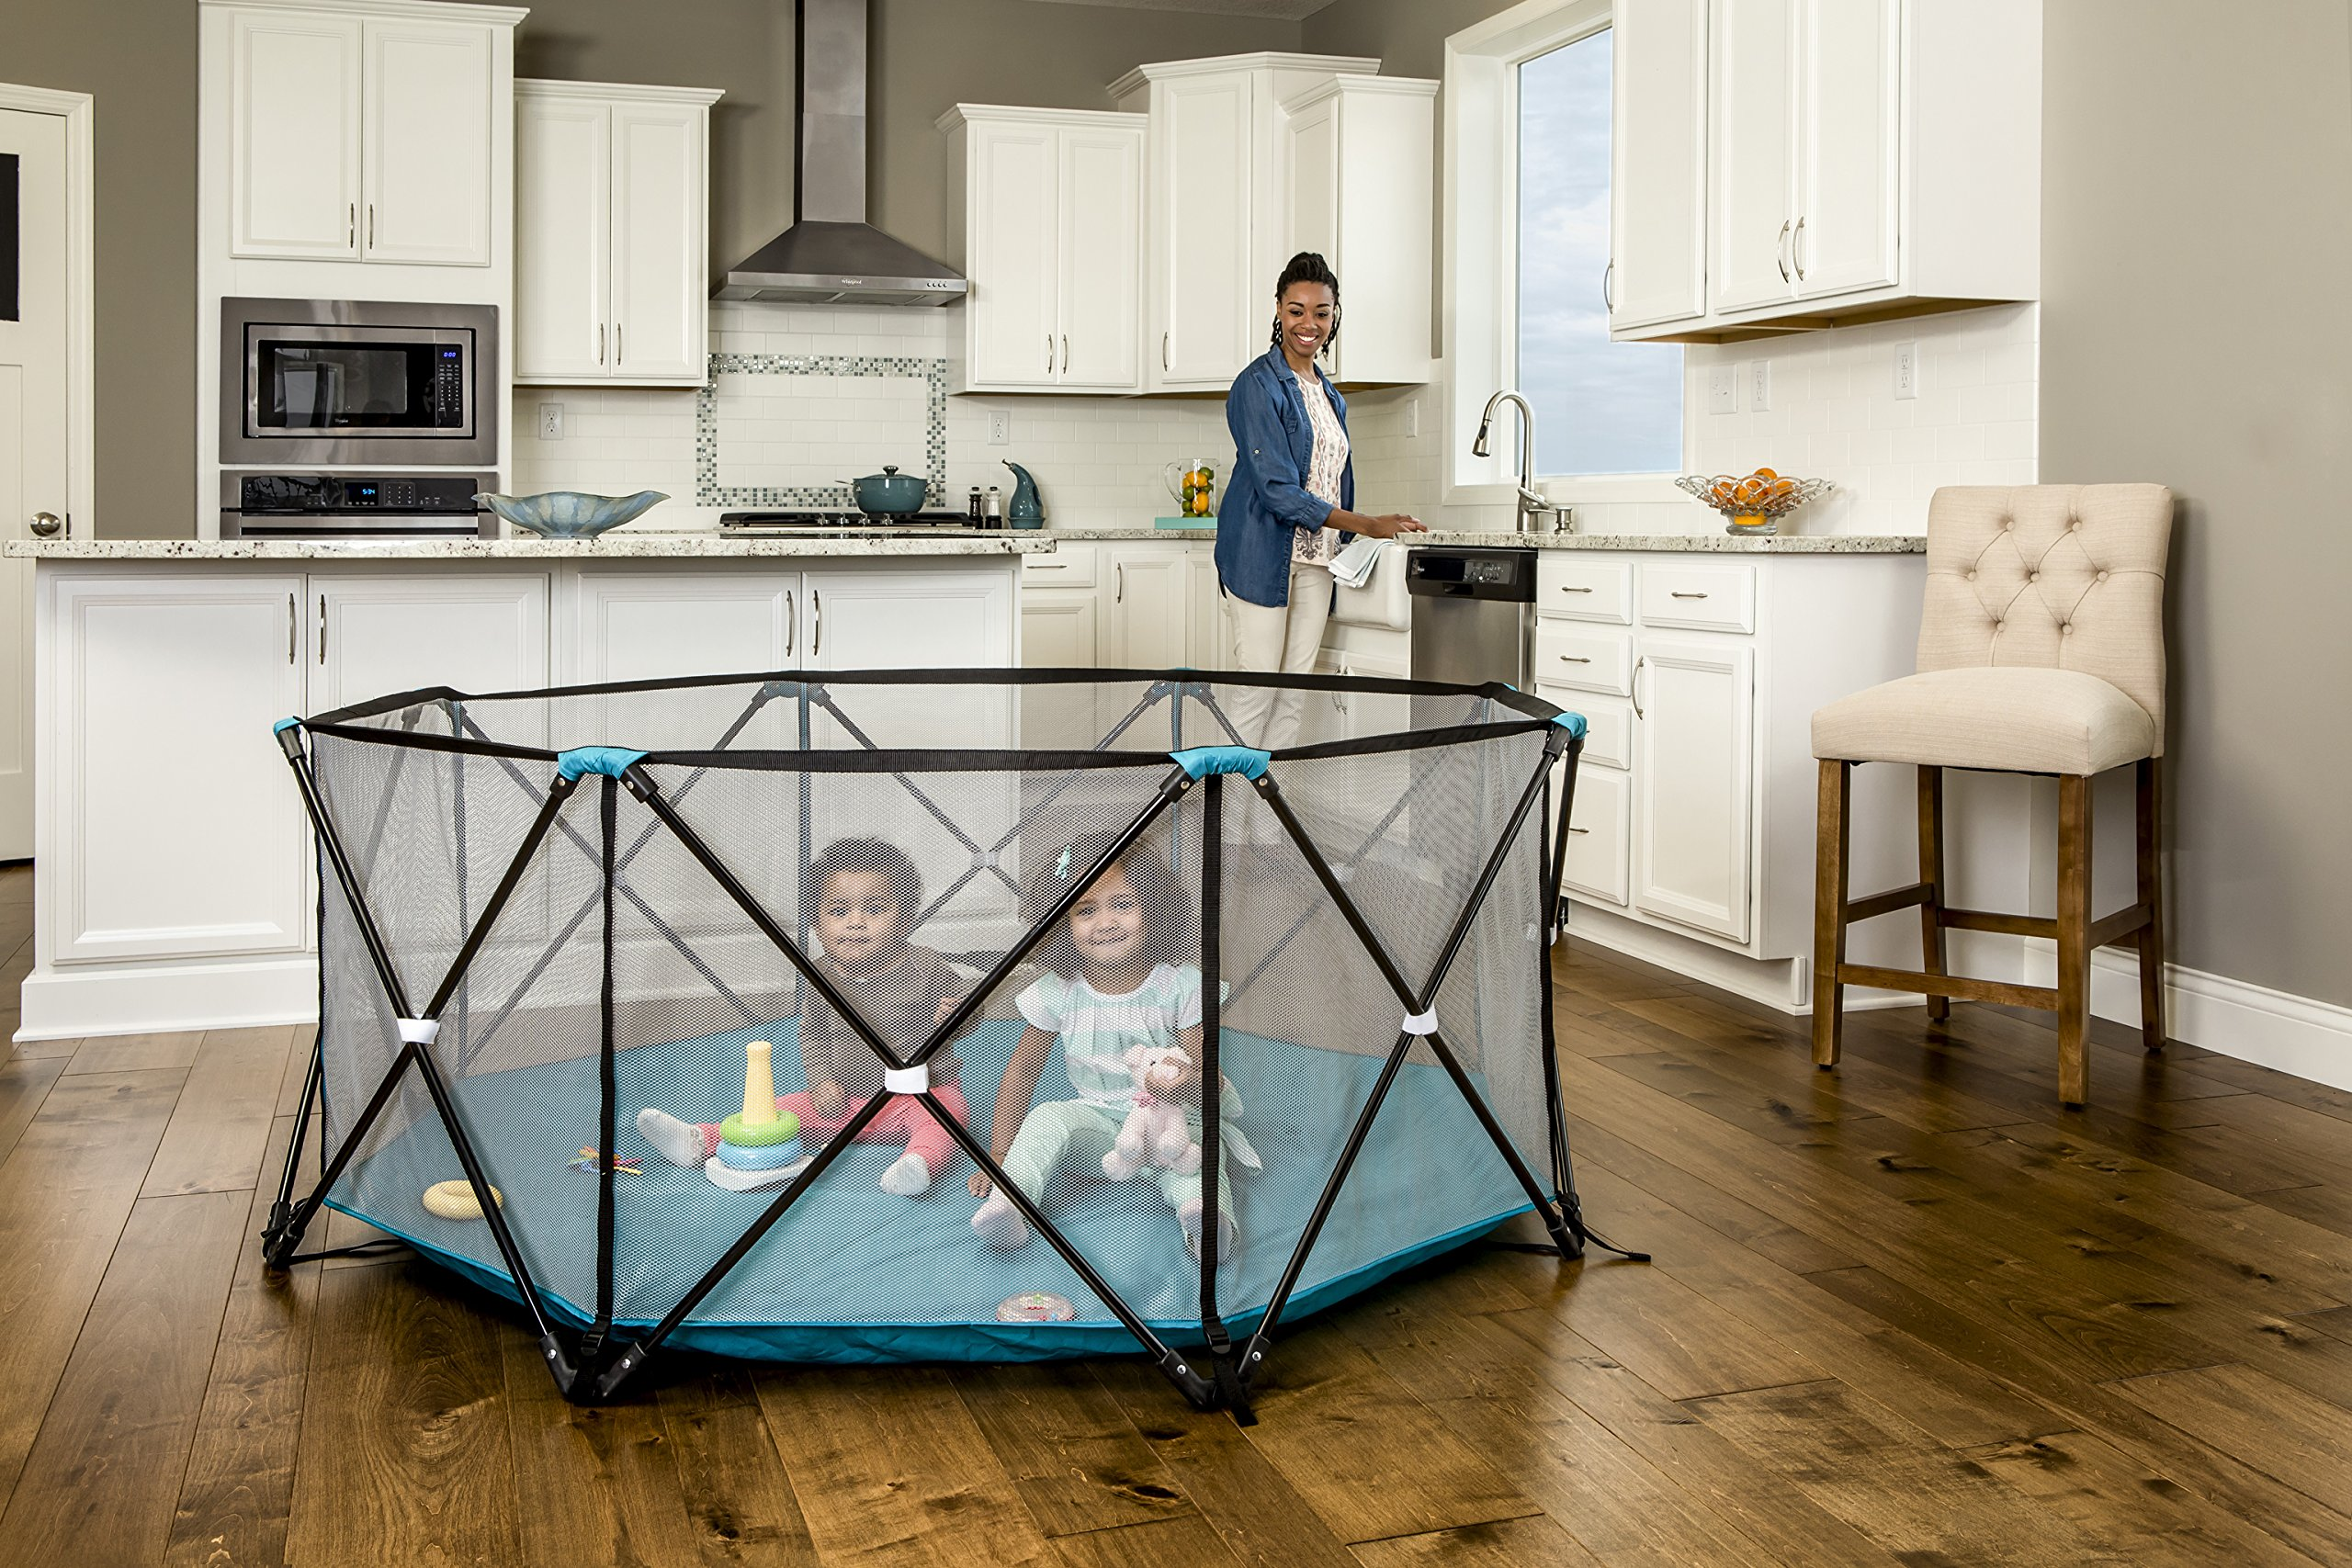 Regalo My Play Portable Playard Indoor and Outdoor with Carry Case and Adjustable/Washable, Teal, 8-Panel by Regalo